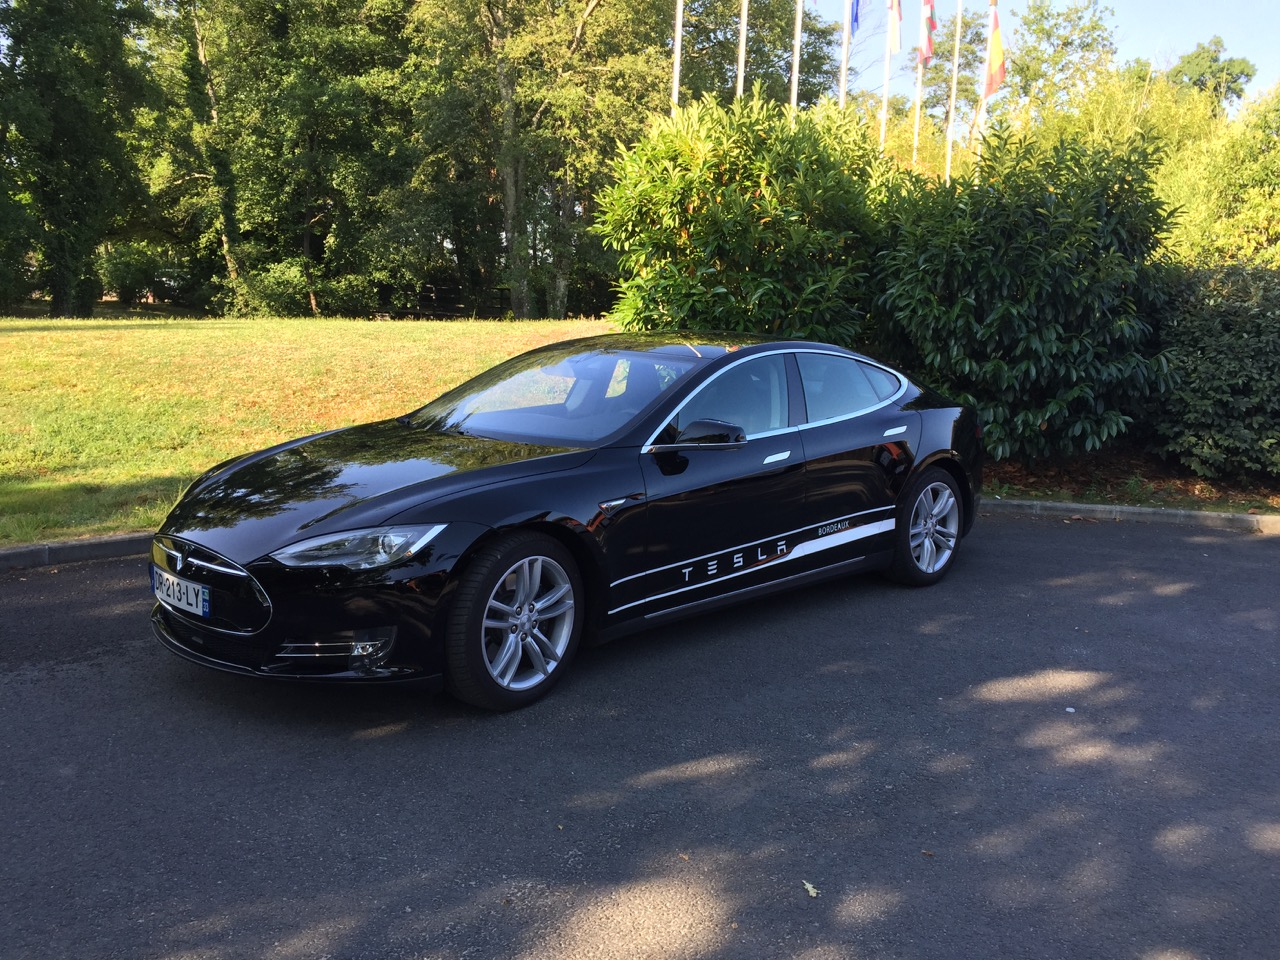 Test driving a Tesla at Golf du Medoc, France